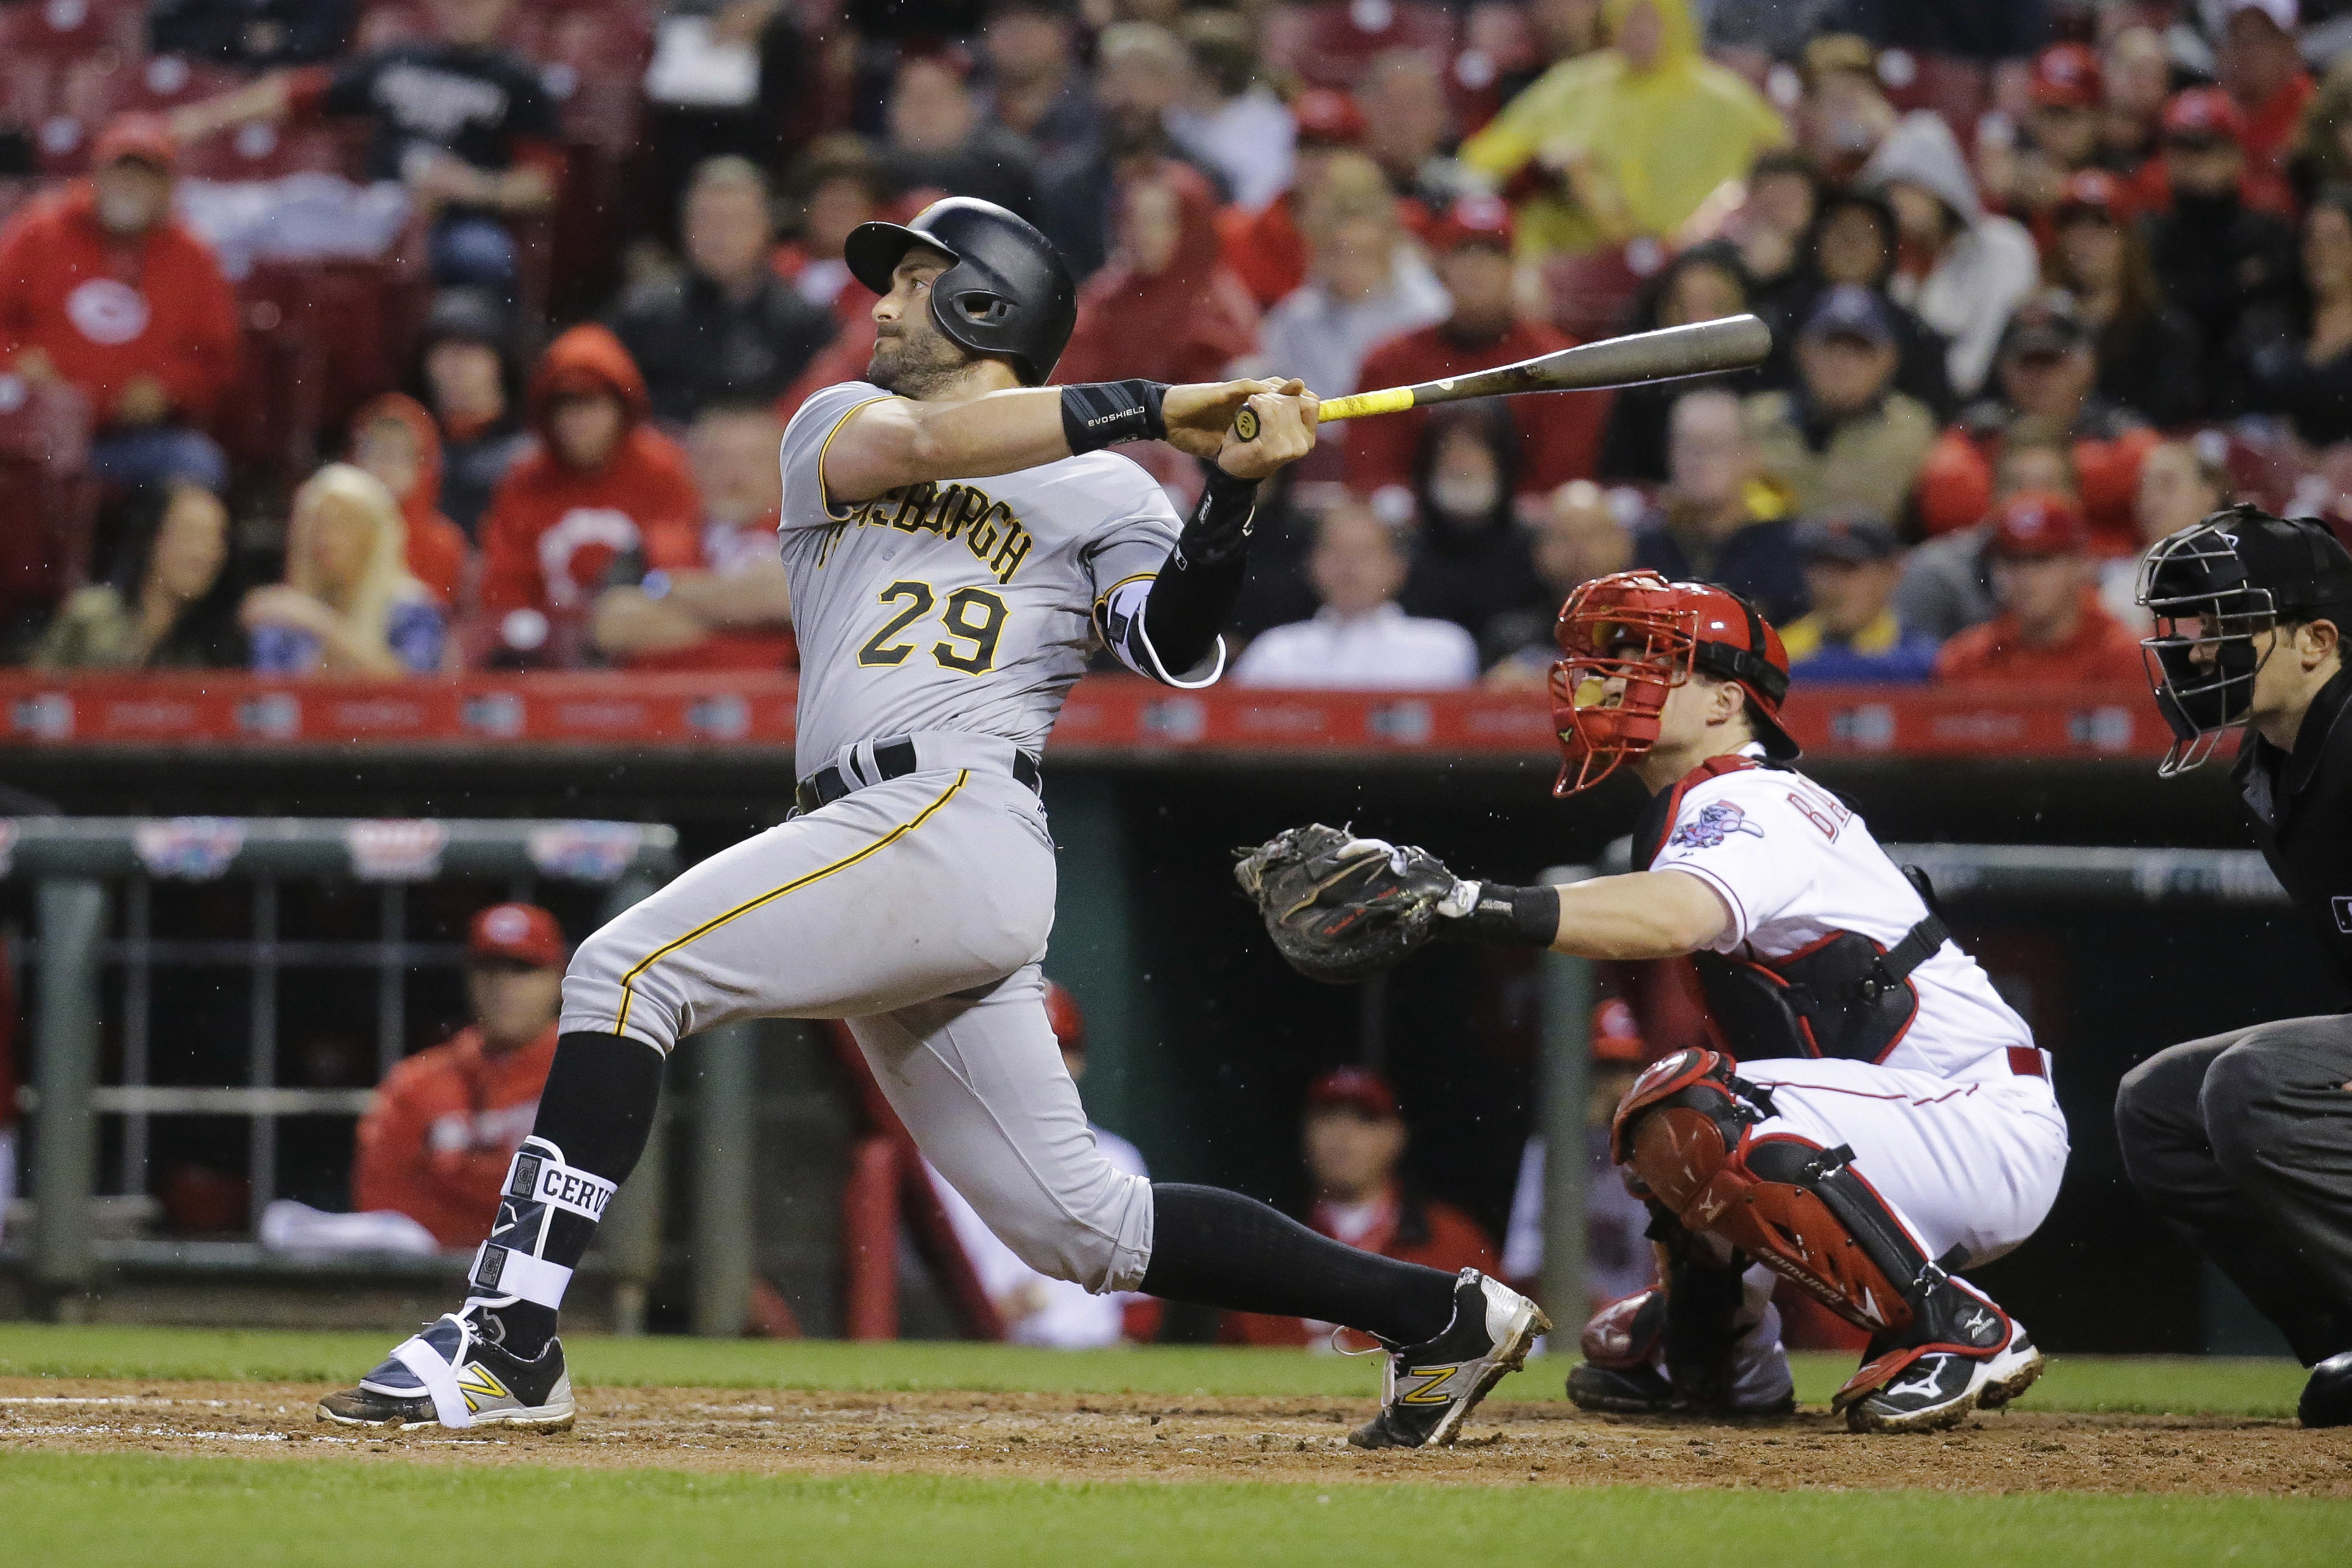 Pittsburgh Pirates' Francisco Cervelli (29) hits a RBI sacrifice fly off Cincinnati Reds relief pitcher Dan Straily to drive in Andrew McCutchen in the sixth inning of a baseball game, Monday, May 9, 2016, in Cincinnati. (AP Photo/John Minchillo)